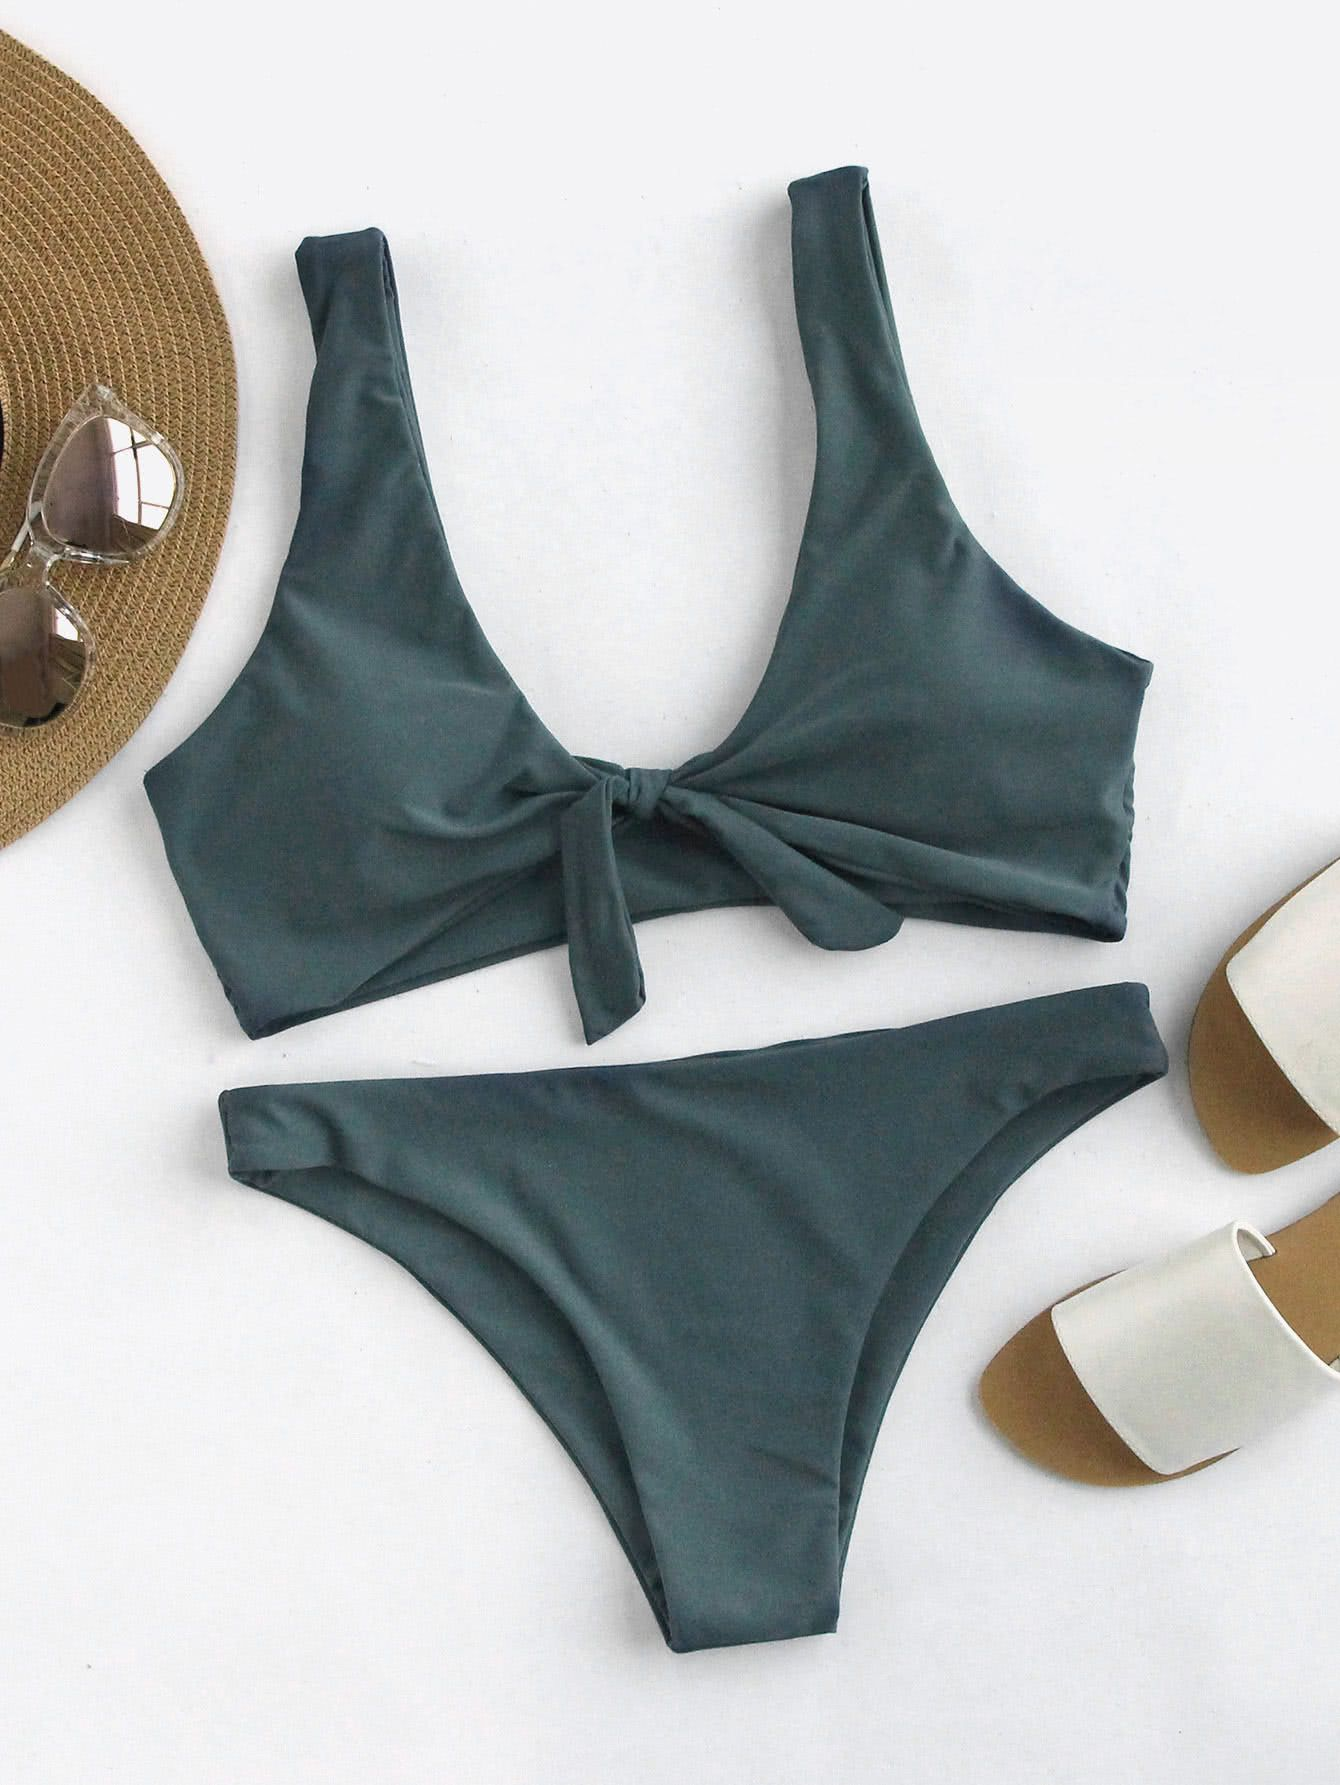 OnlineShein Bow Offers Back Set Bikini Tie Front Scoop Shop qVpGSUzM